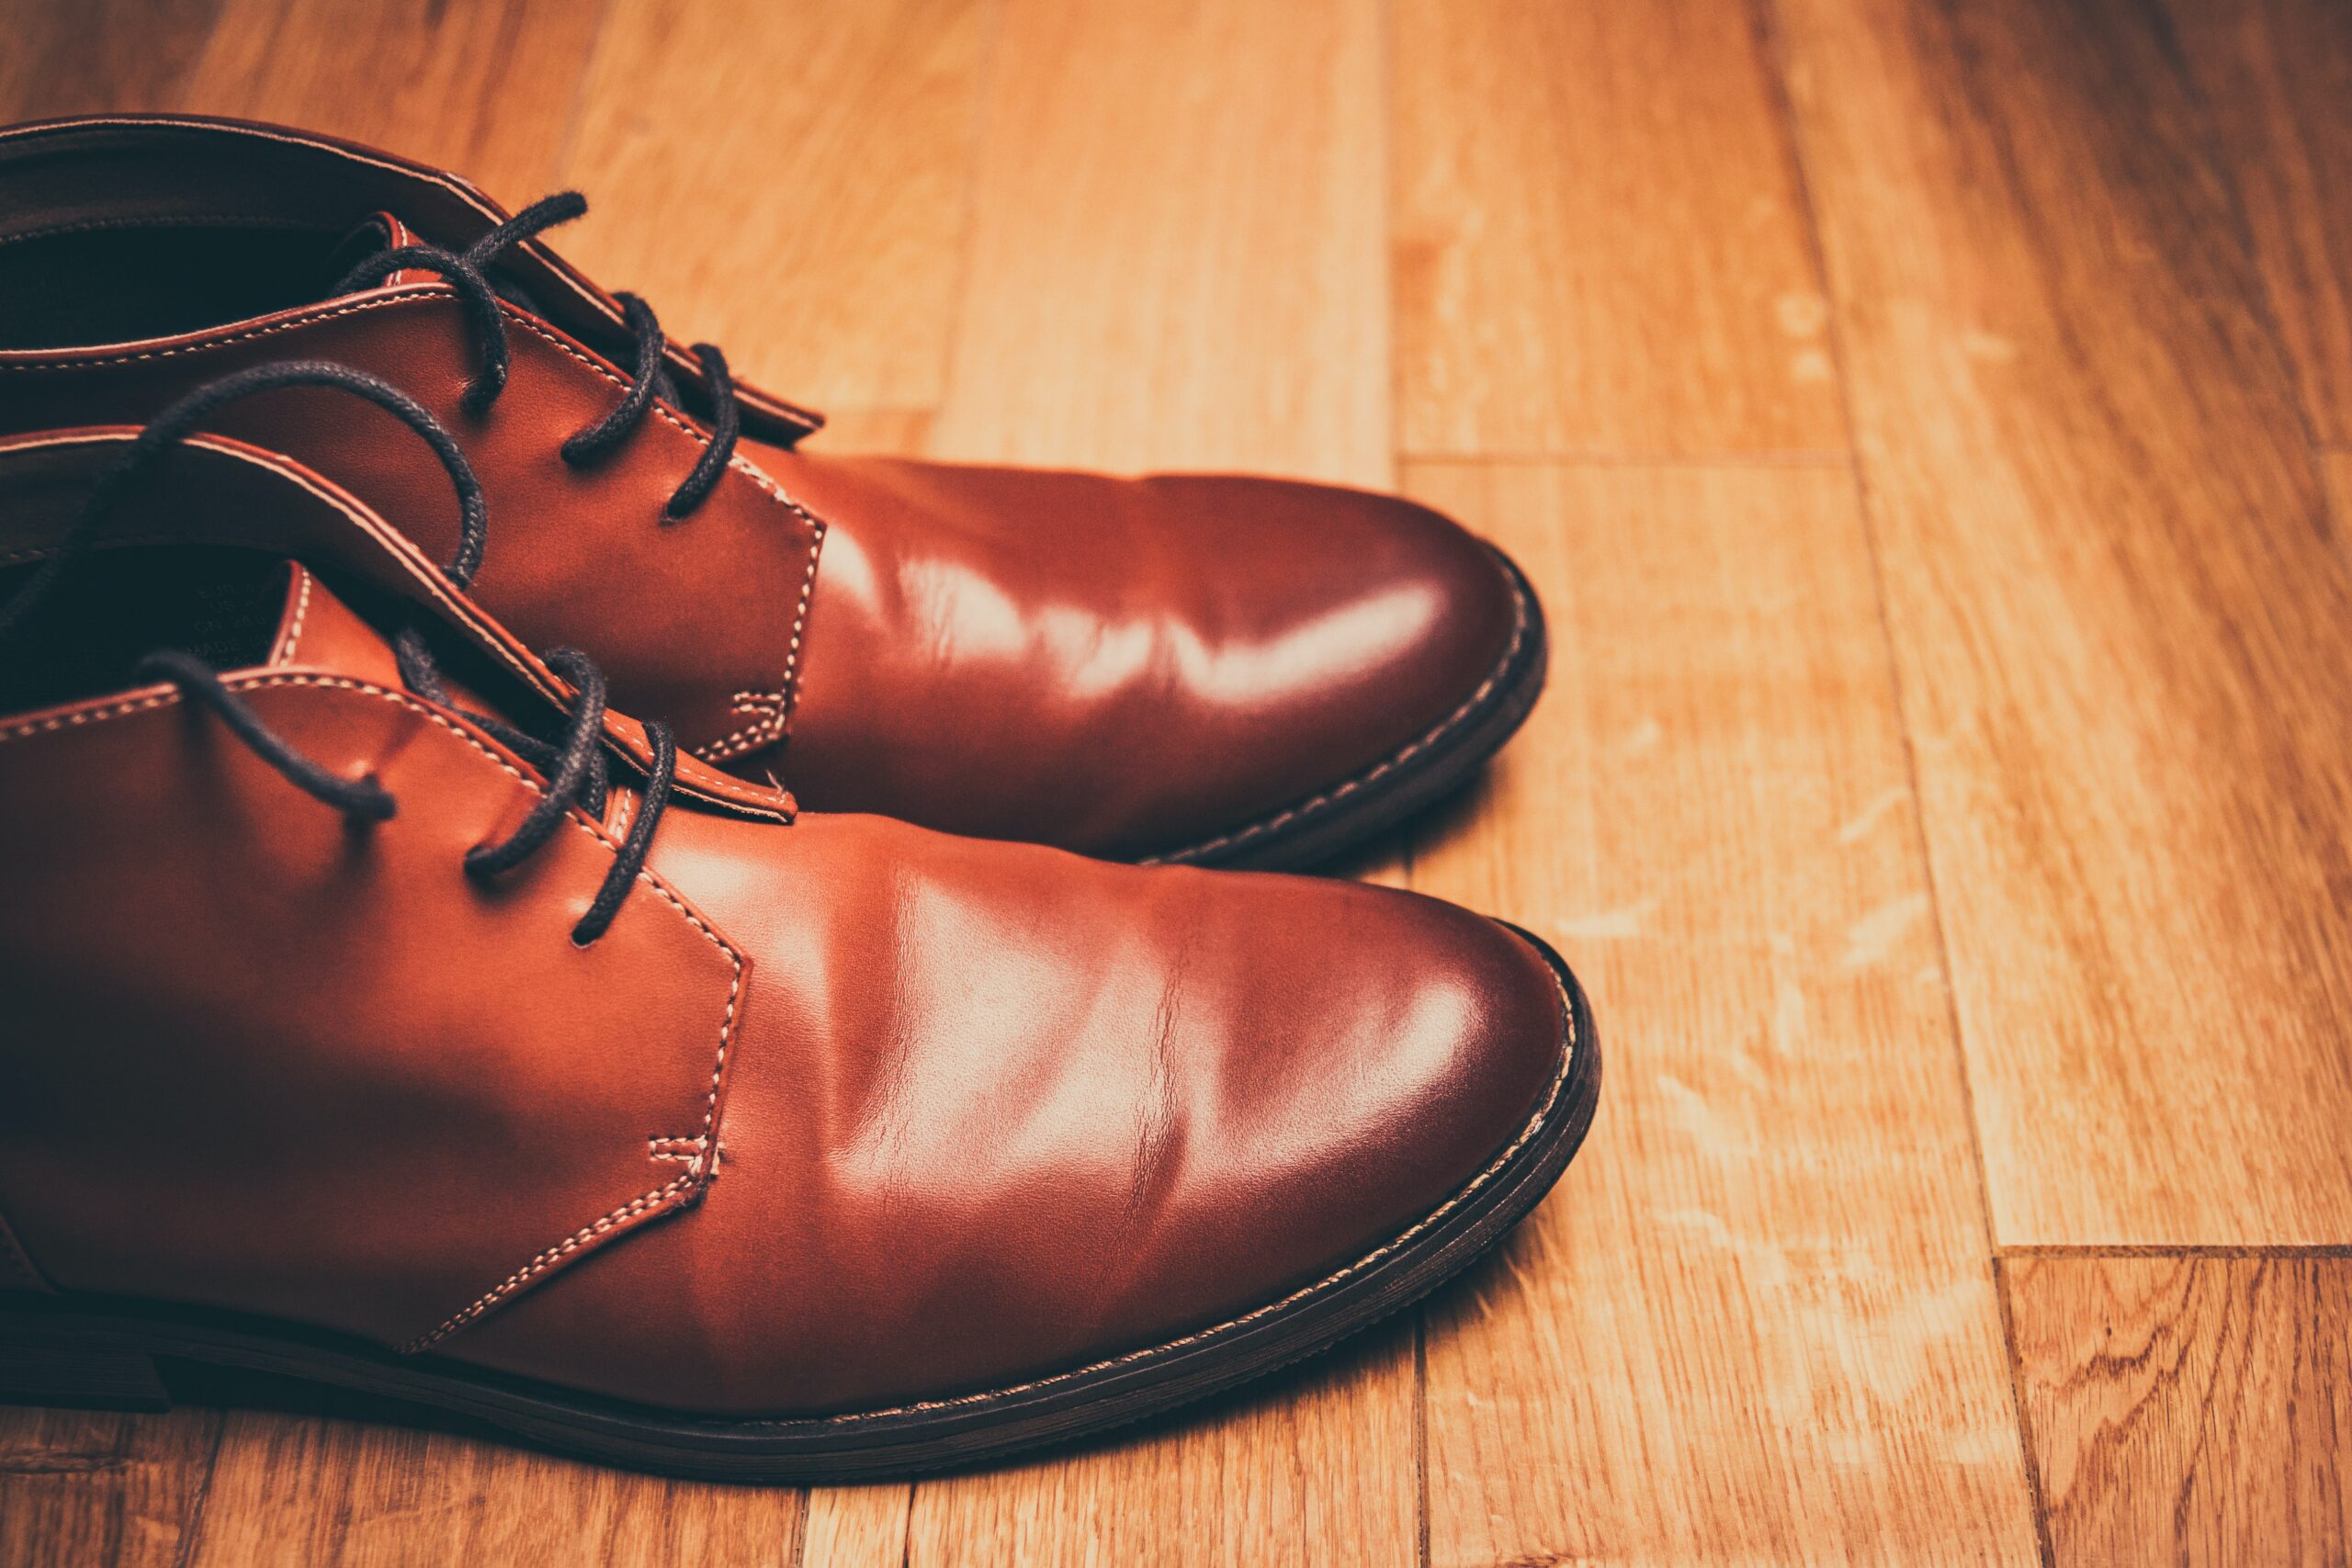 How To Make Old Shoes Feel Brand New Again